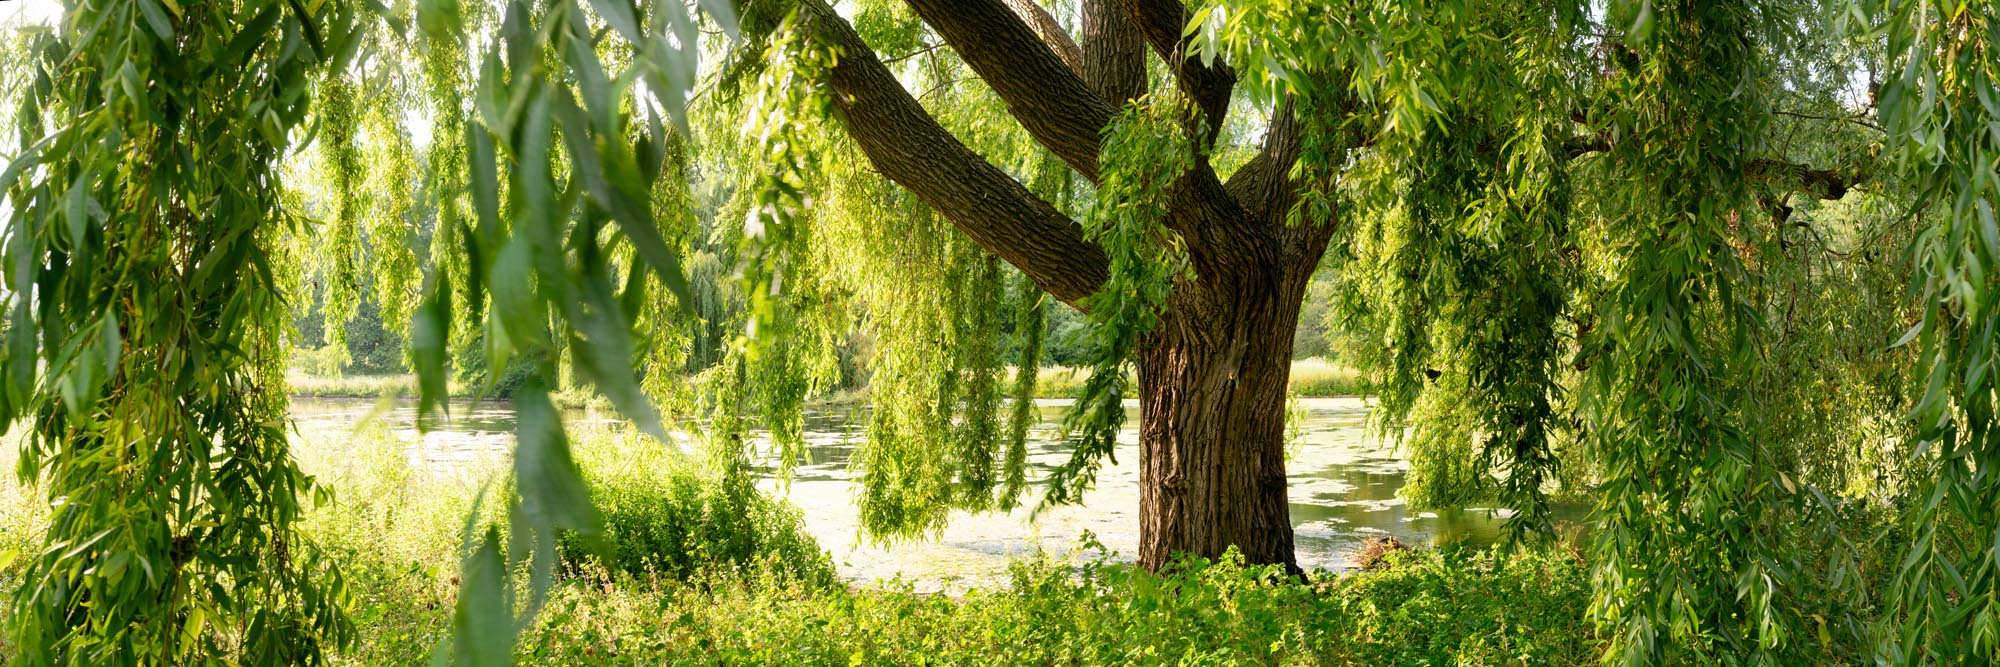 A squirrel runs down a weeping willow tree in st James's park London